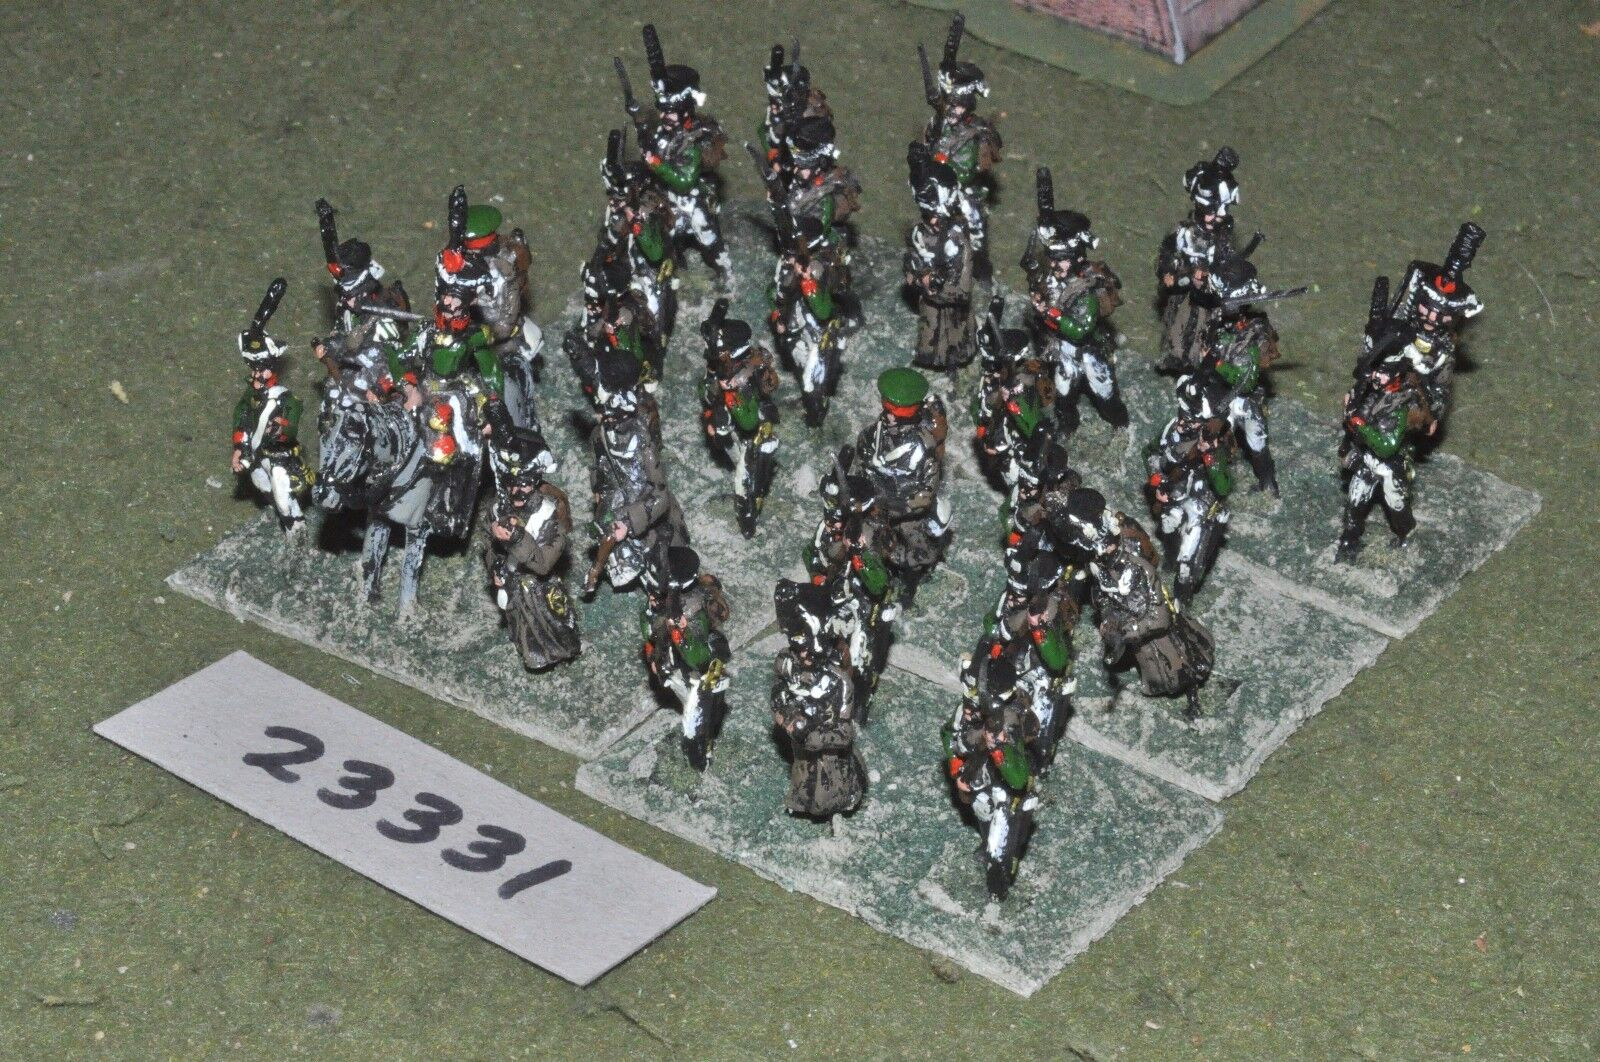 25 mm napoléoniennes russe-Grenadiers 30 figures-INF (23331)